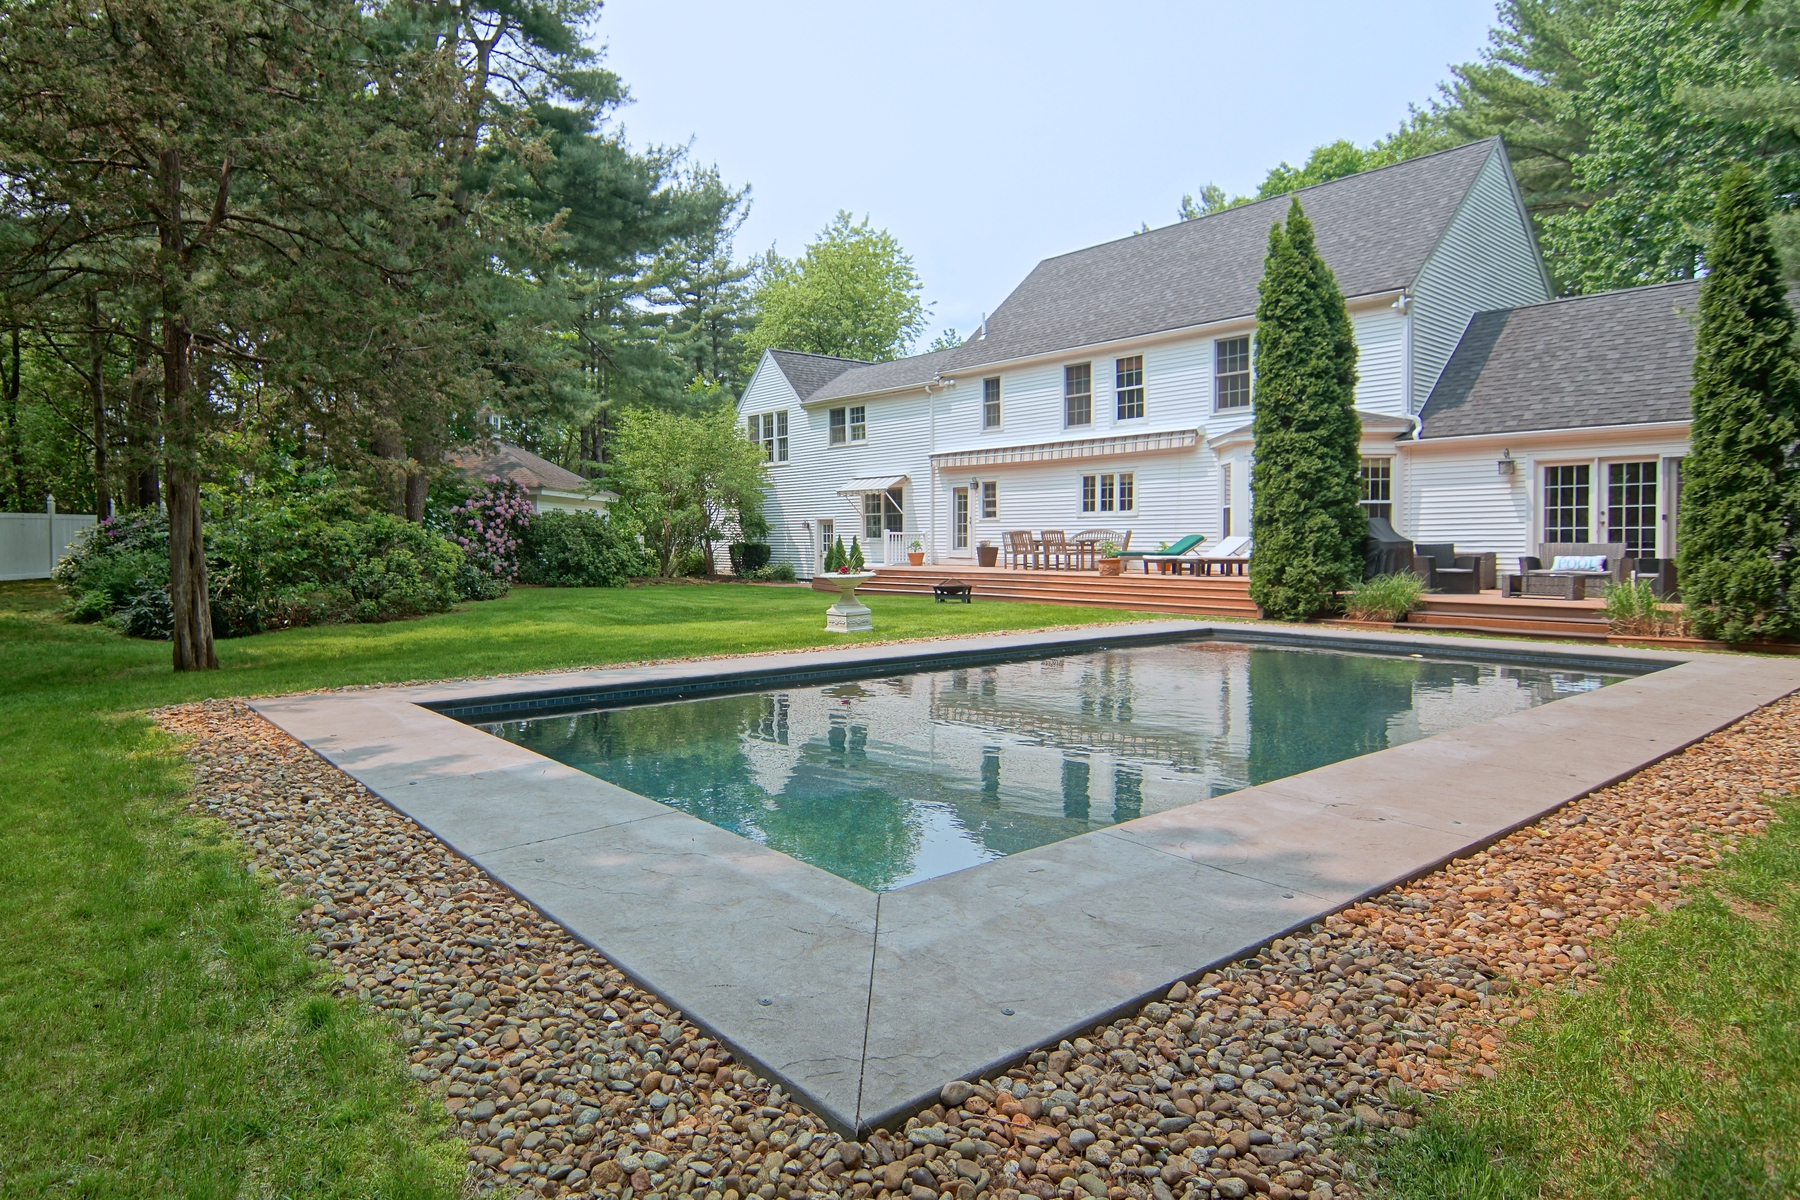 Single Family Homes pour l Vente à Gorgeous Open Concept Colonial With A Modern, European Twist 89 Tidewater Farm Road Greenland, New Hampshire 03840 États-Unis